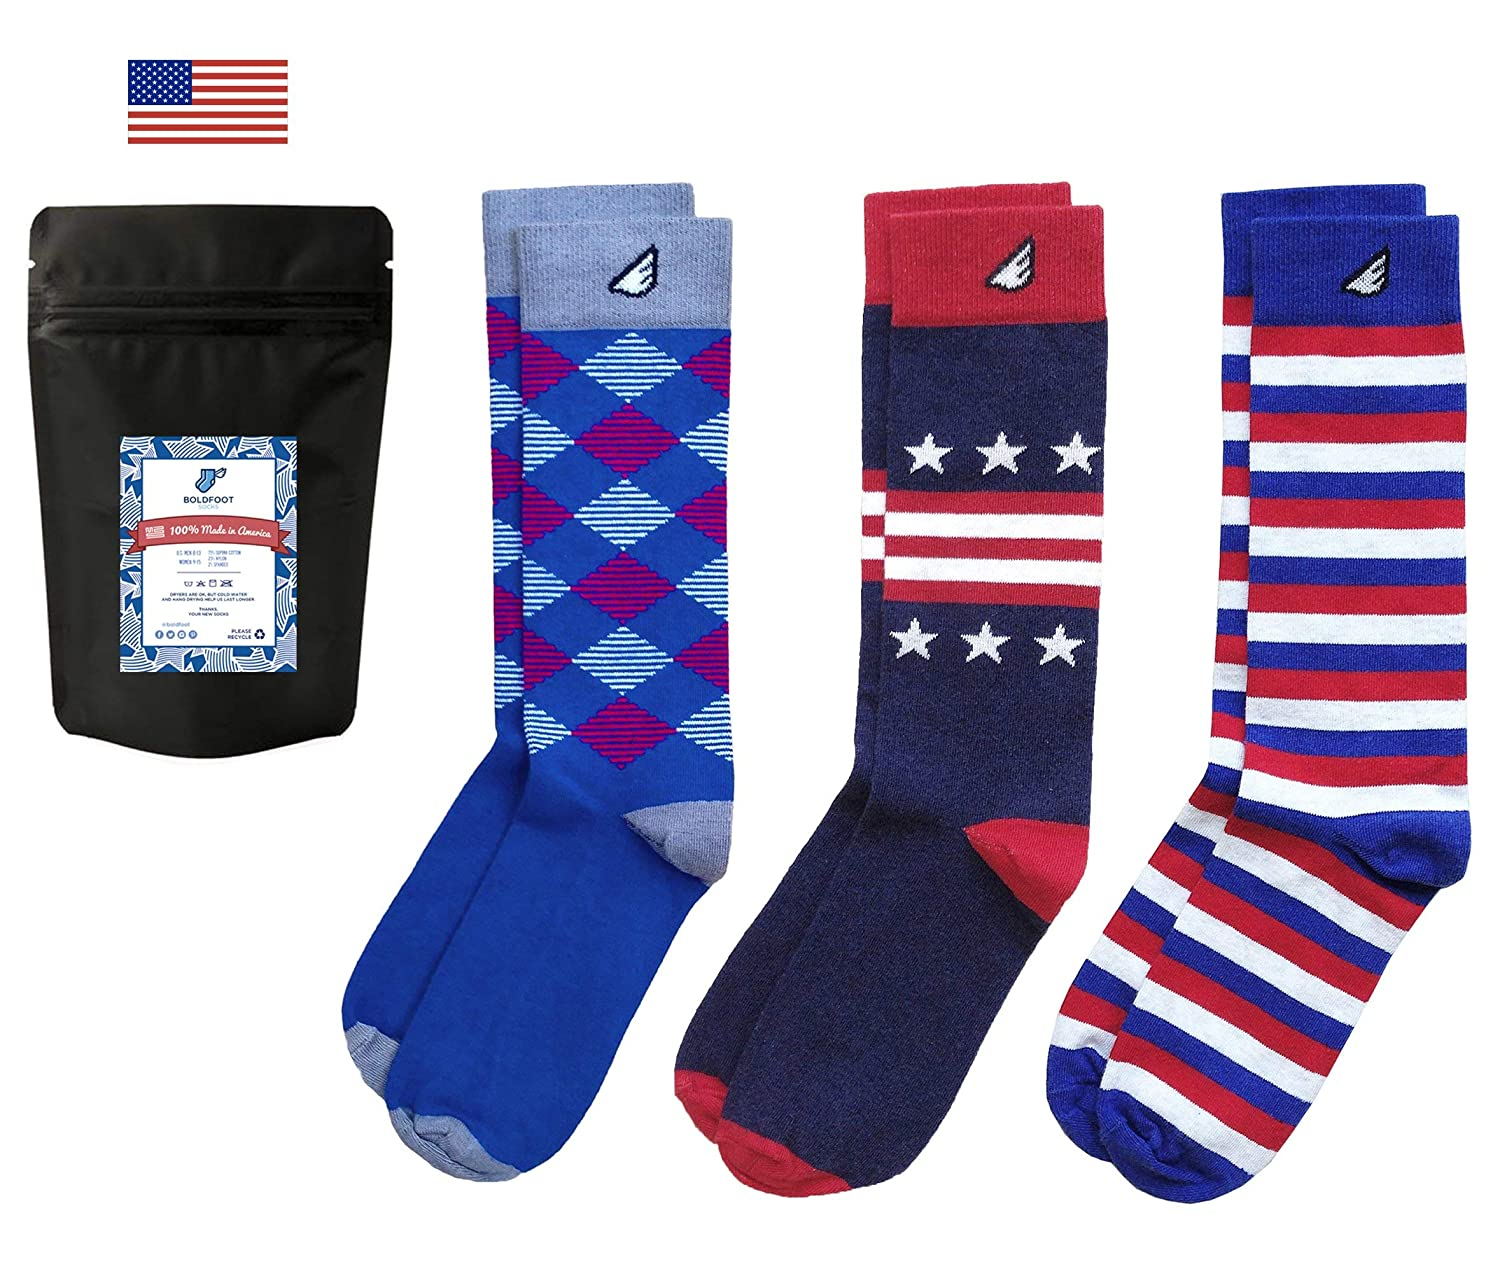 Premium Quality Pack Colorful Fun Patterned Womens Socks Made in America 3-Pack, Multi-Colored